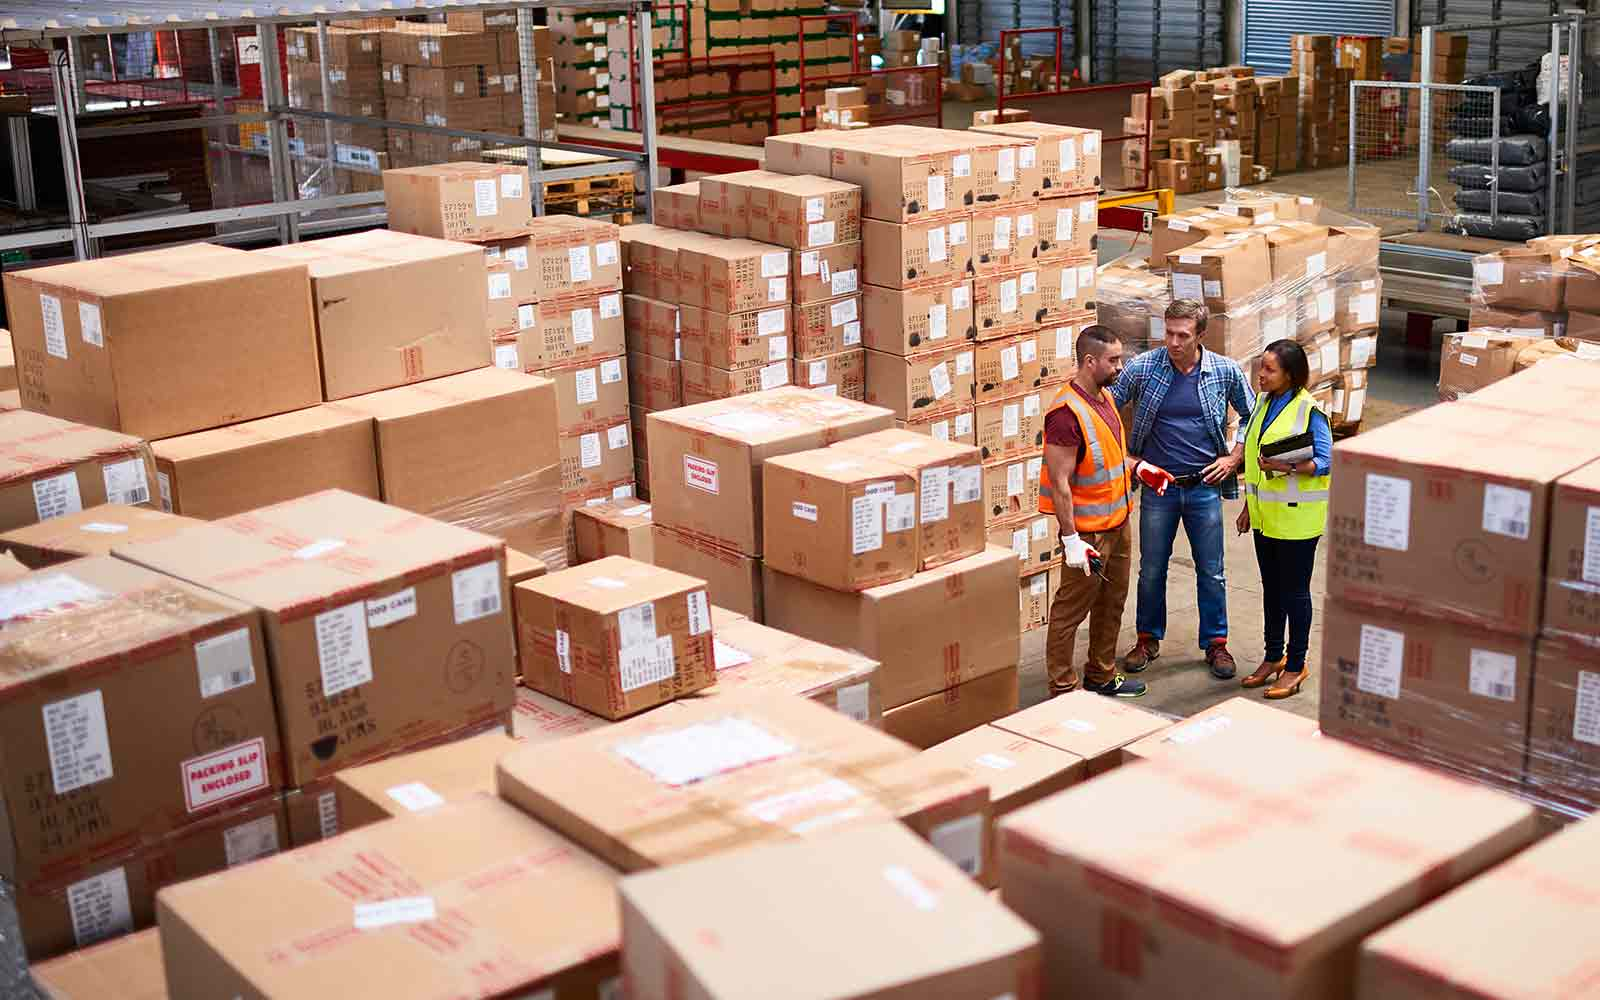 warehouse workers discussing business